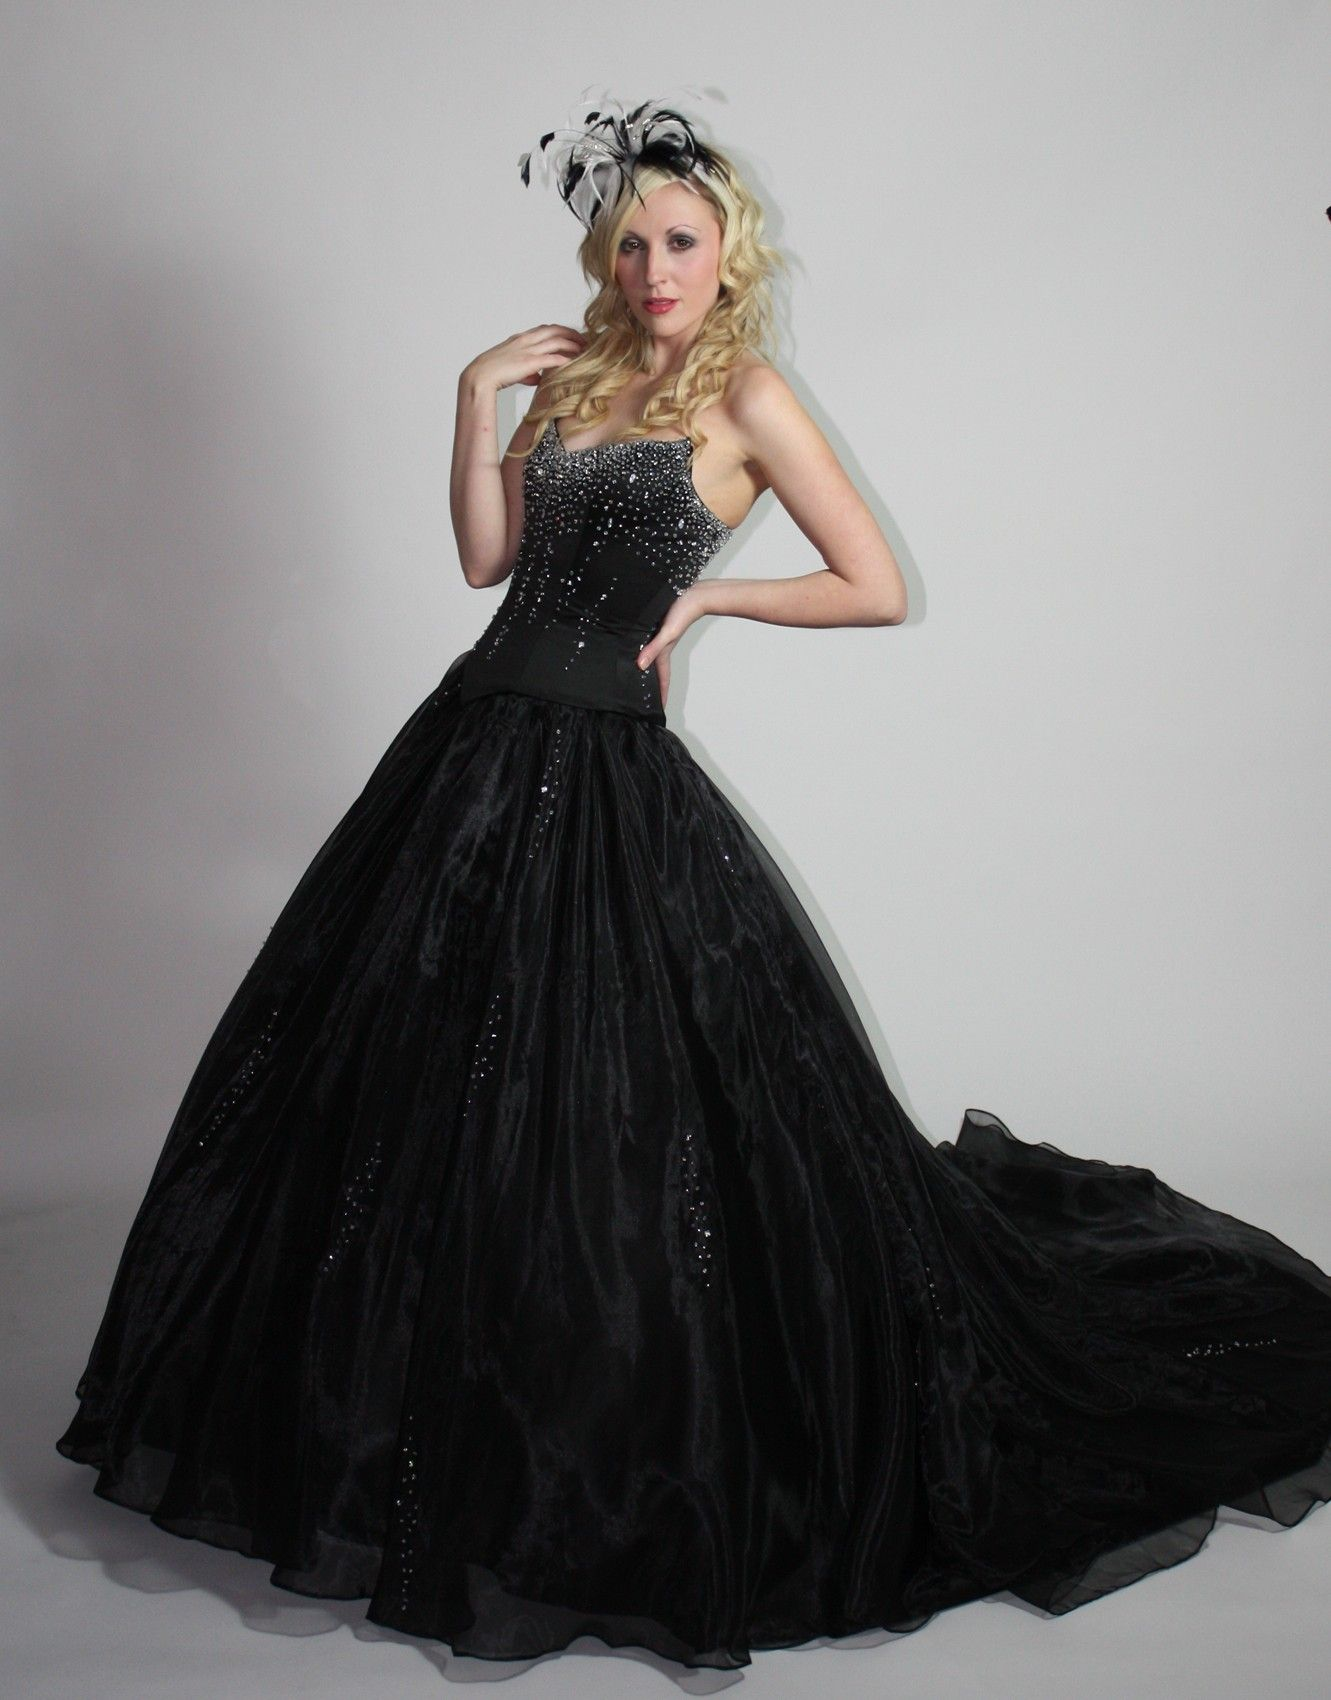 Awesome Black Gothic Wedding Dresses Fantastic Ideas In